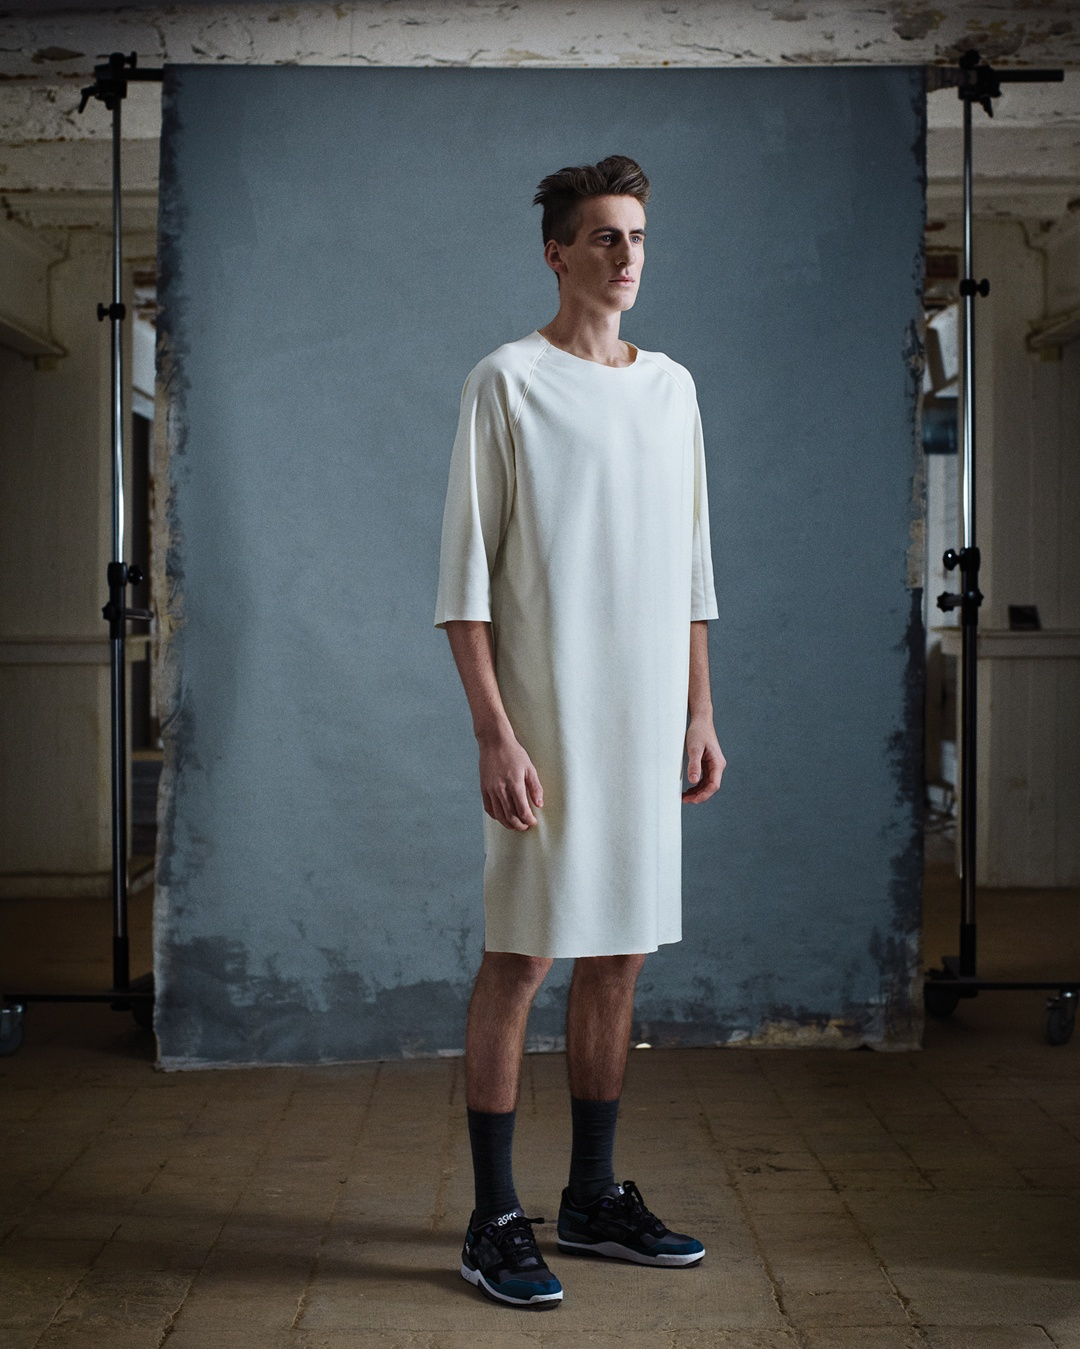 Apollonius 2014 Autumn Winter  collection (10)